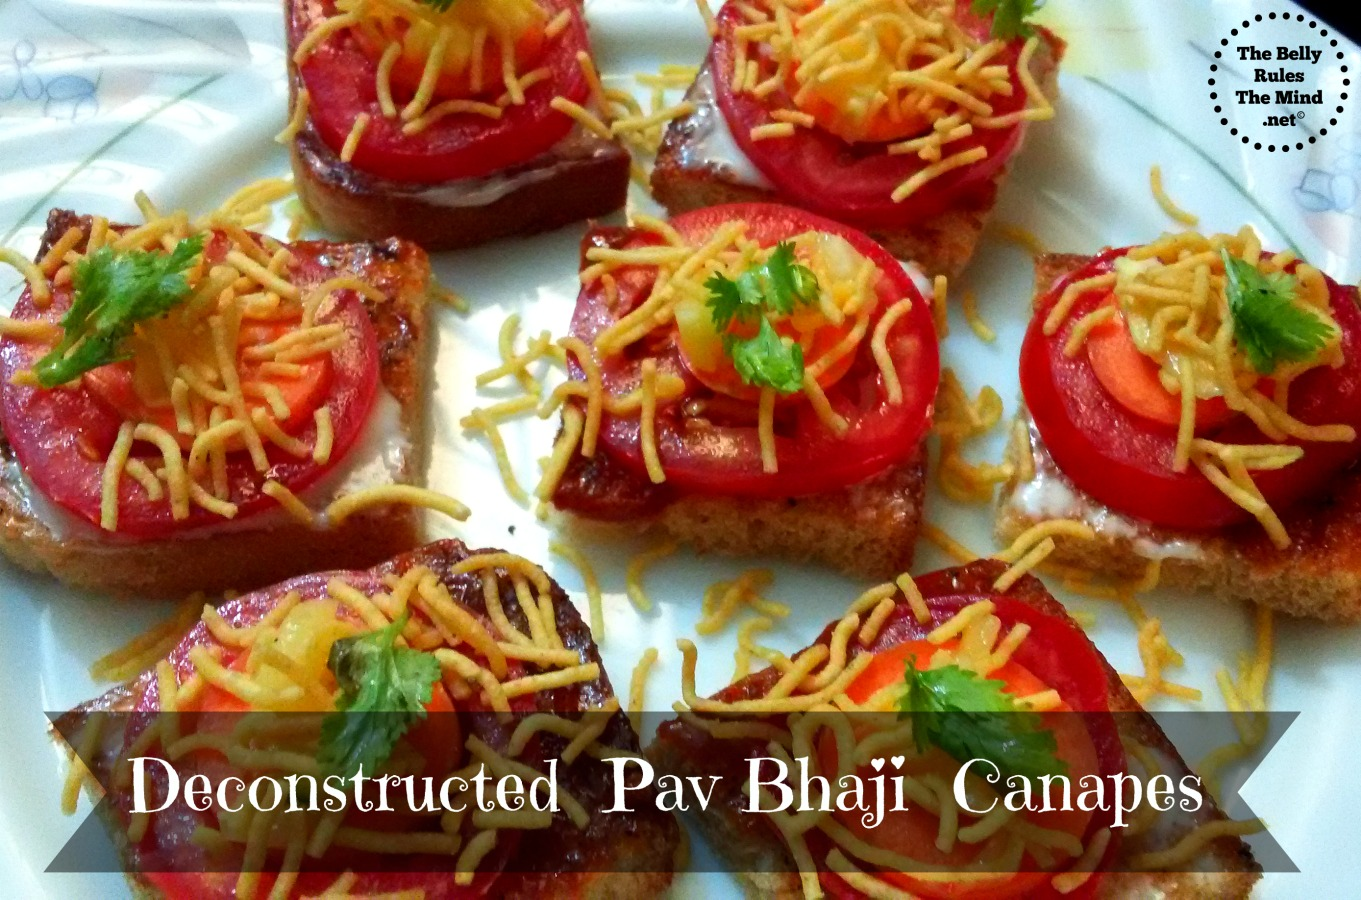 Deconstructed Pav Bhaji Canapes.